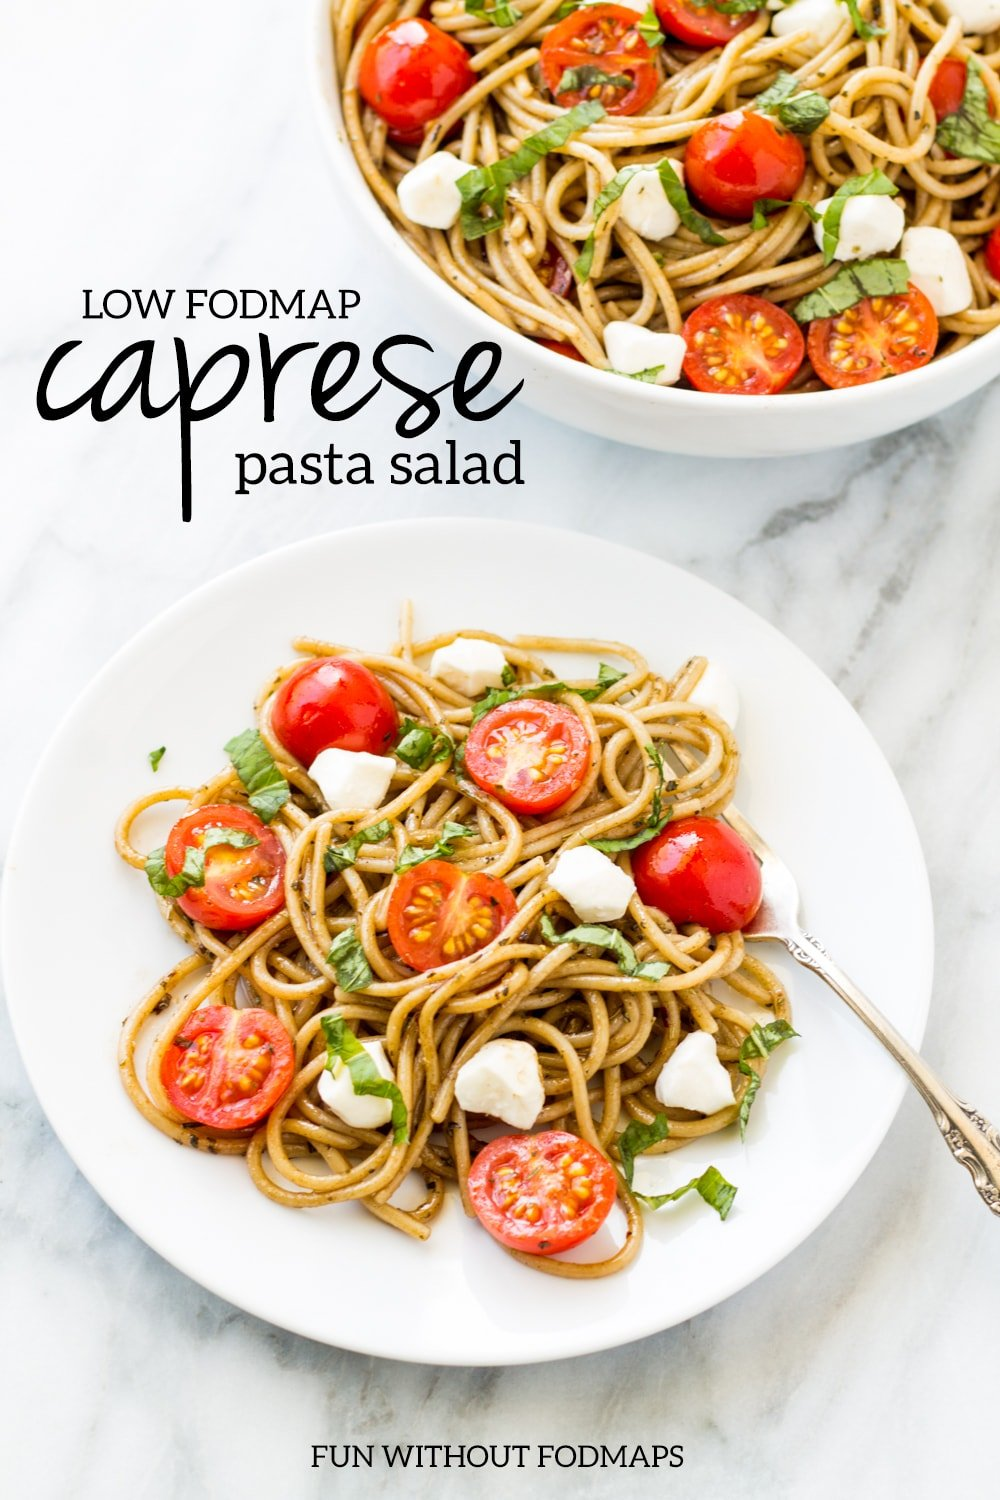 """Looking down at a plate of balsamic-tossed spaghetti dotted with halved cherry tomatoes, mozzarella pieces, and fresh basil. Above the plate, a black text overlay reads """"low FODMAP Caprese pasta salad."""